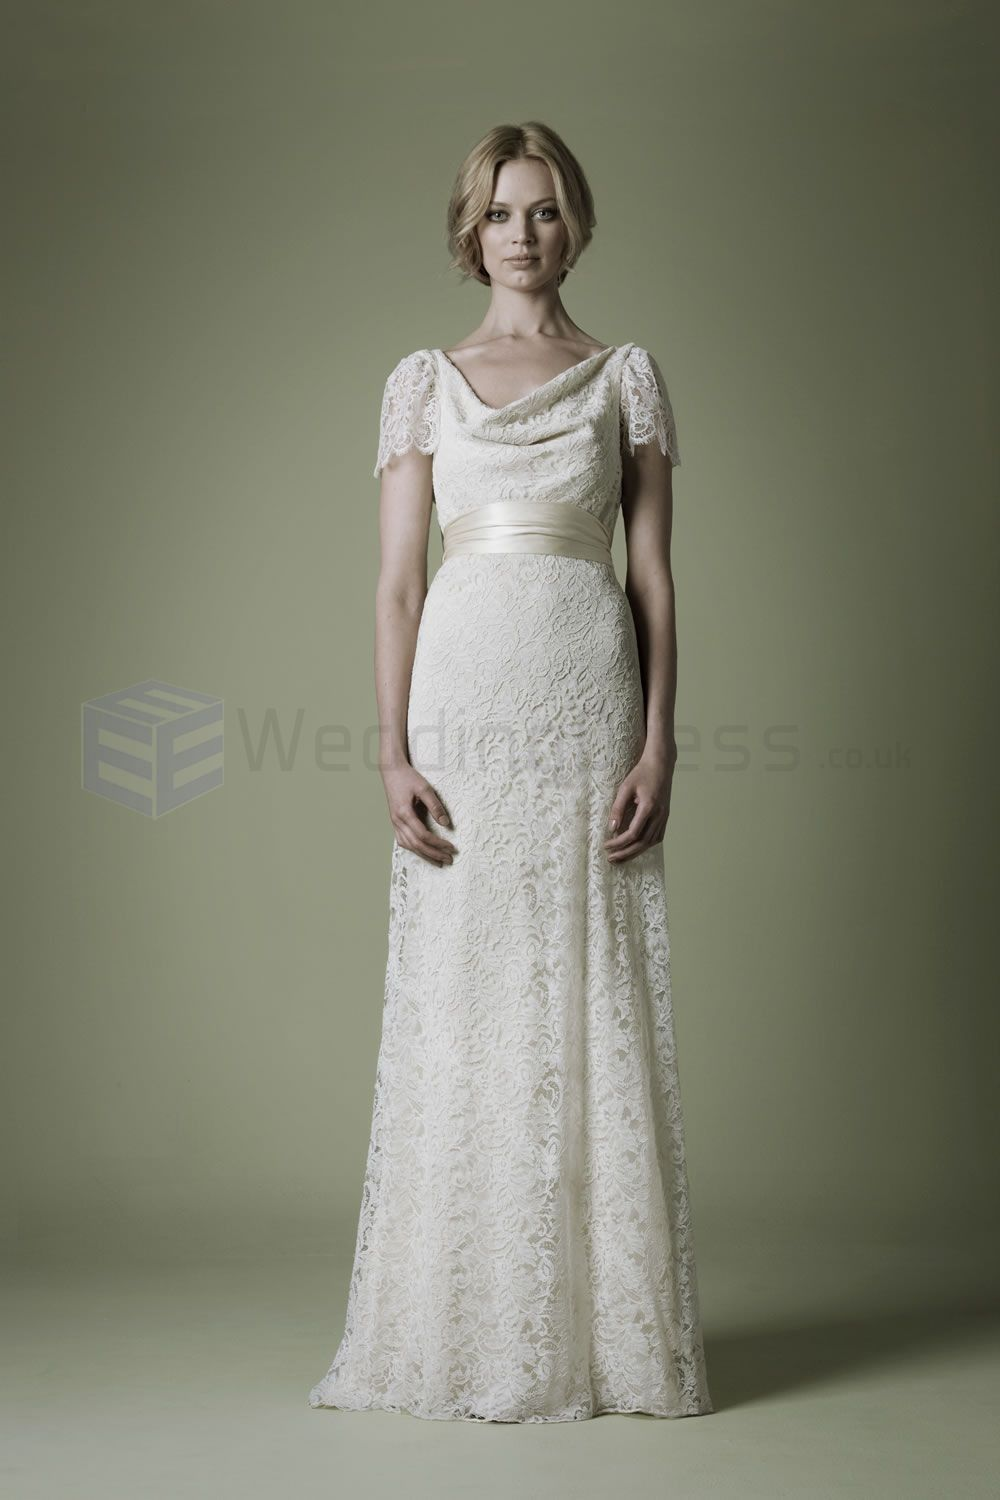 Cream colored vintage wedding dresses  s Style Lace Cream Beautiful Handwashed Silk Sashes Cowl